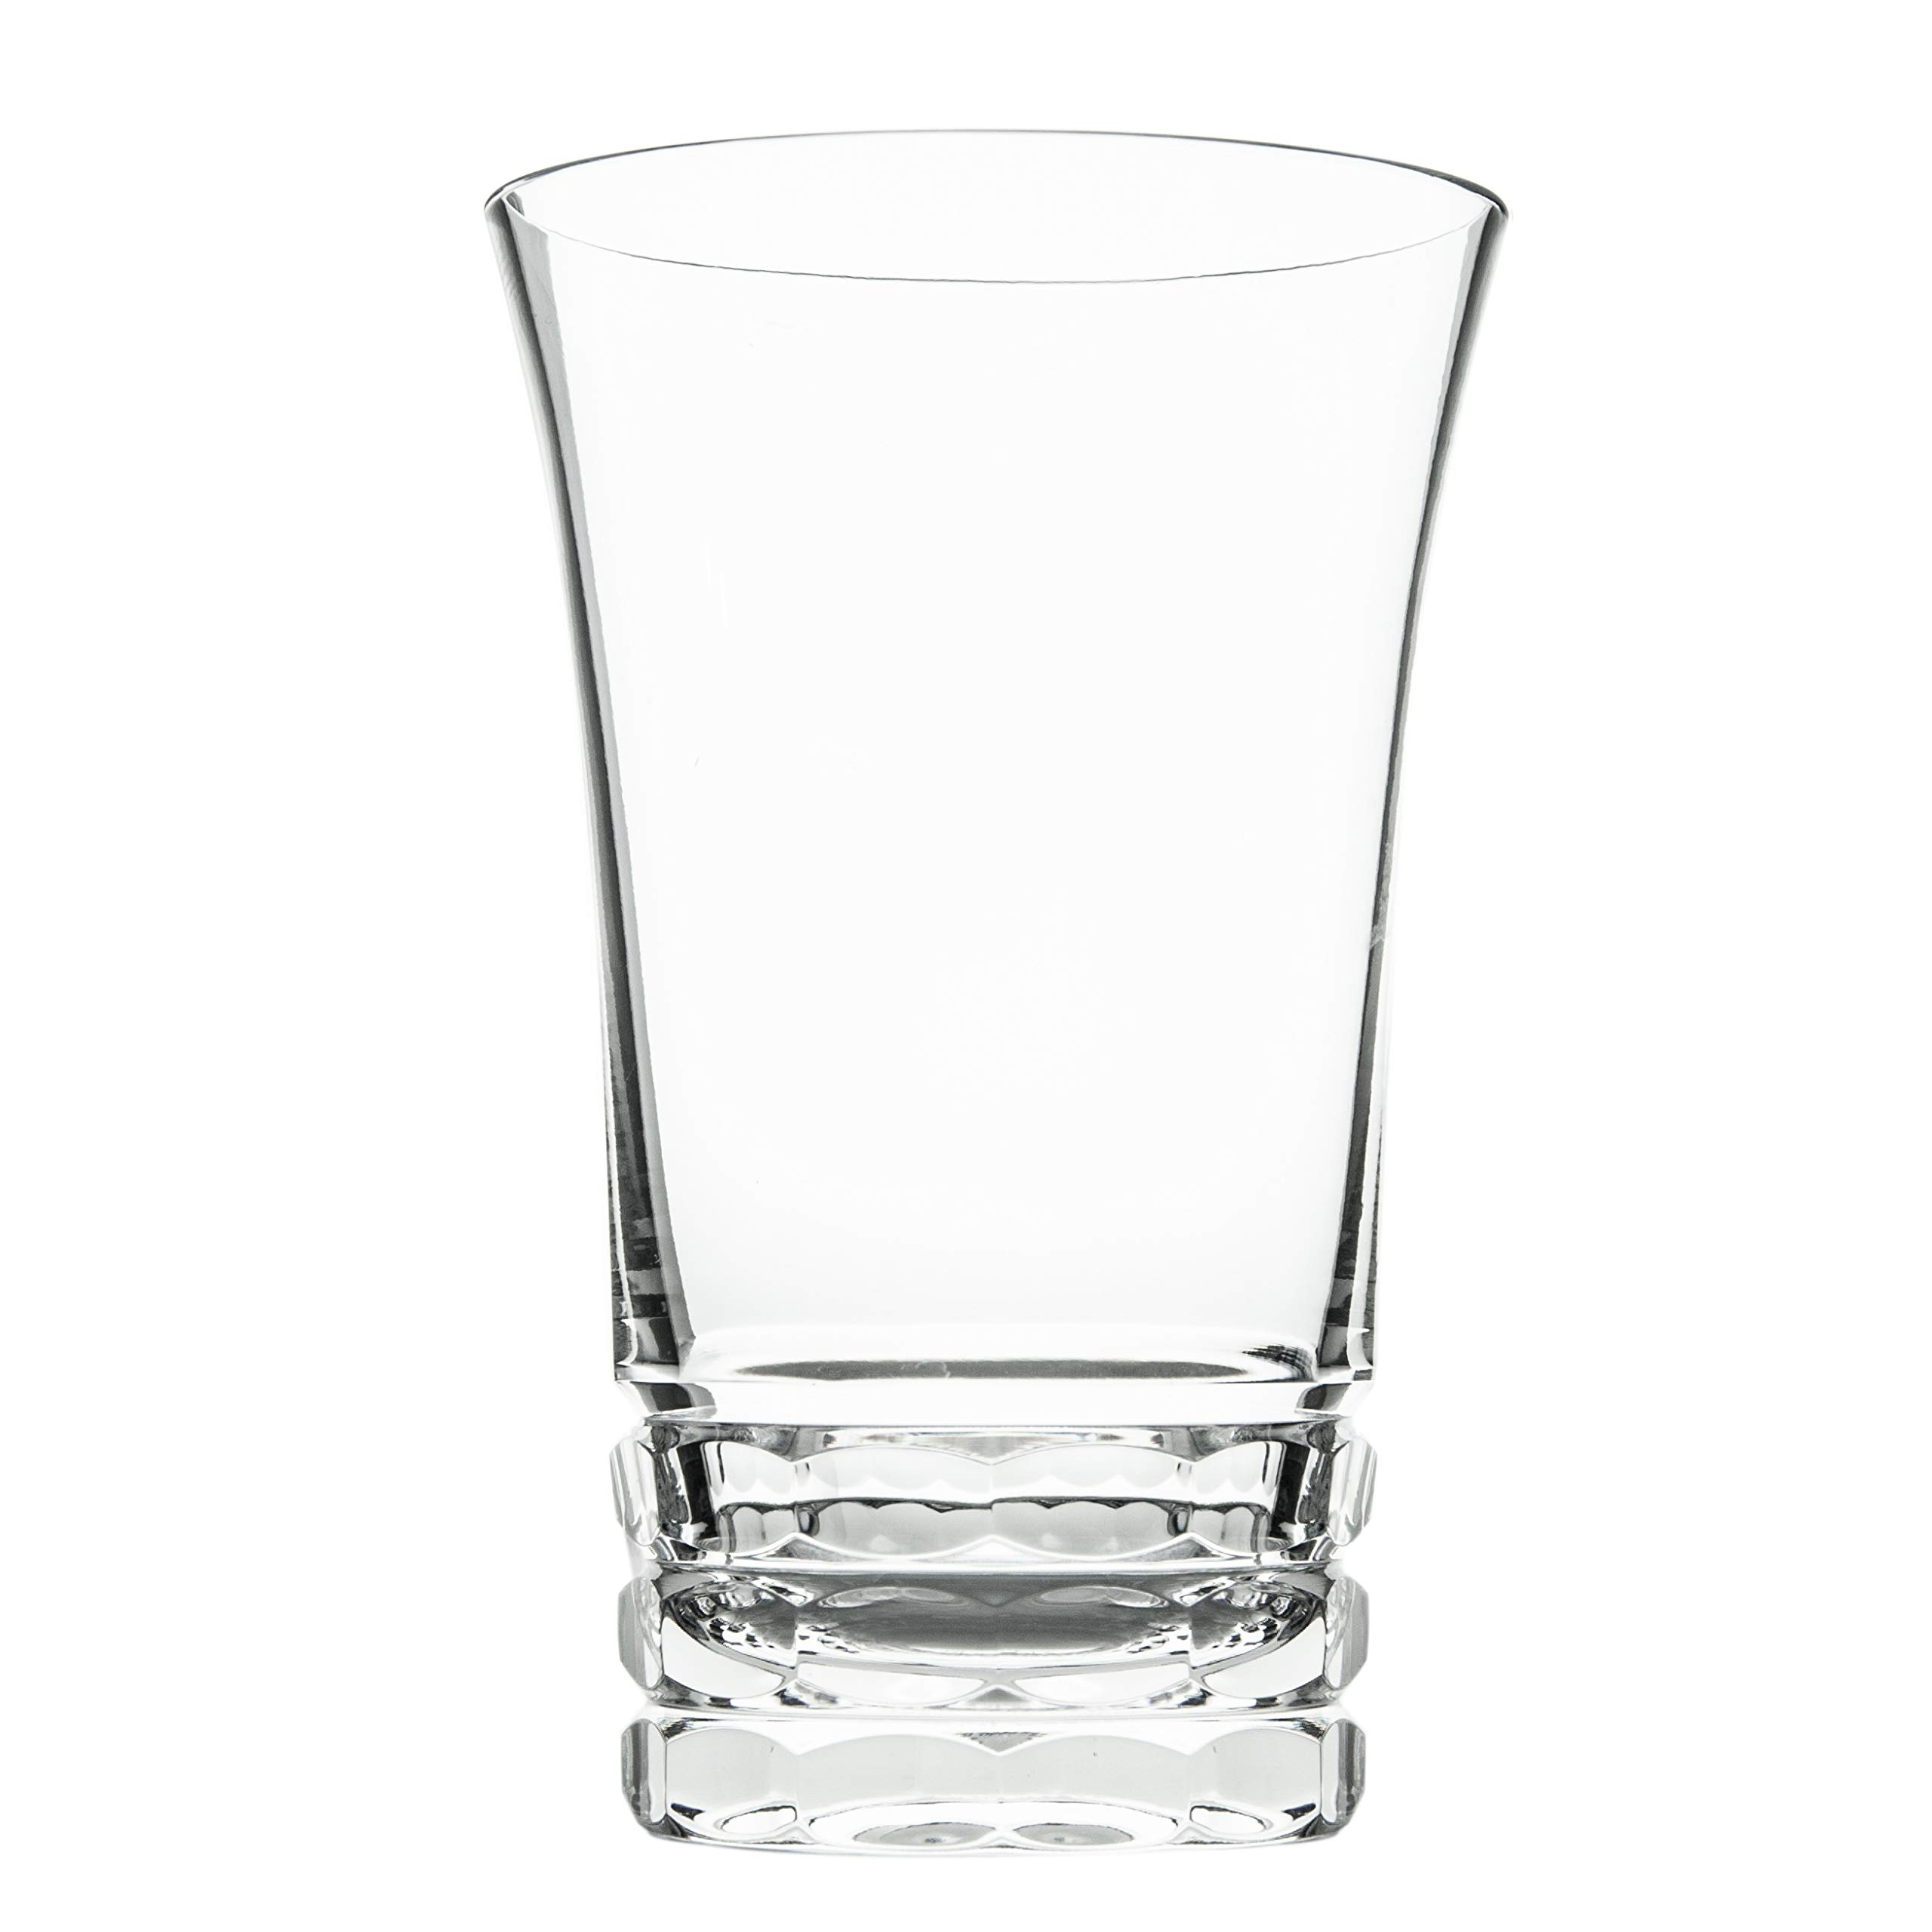 Sèvres 70382-00 Glass Chope Orangeade Vertigo T.101, Glass